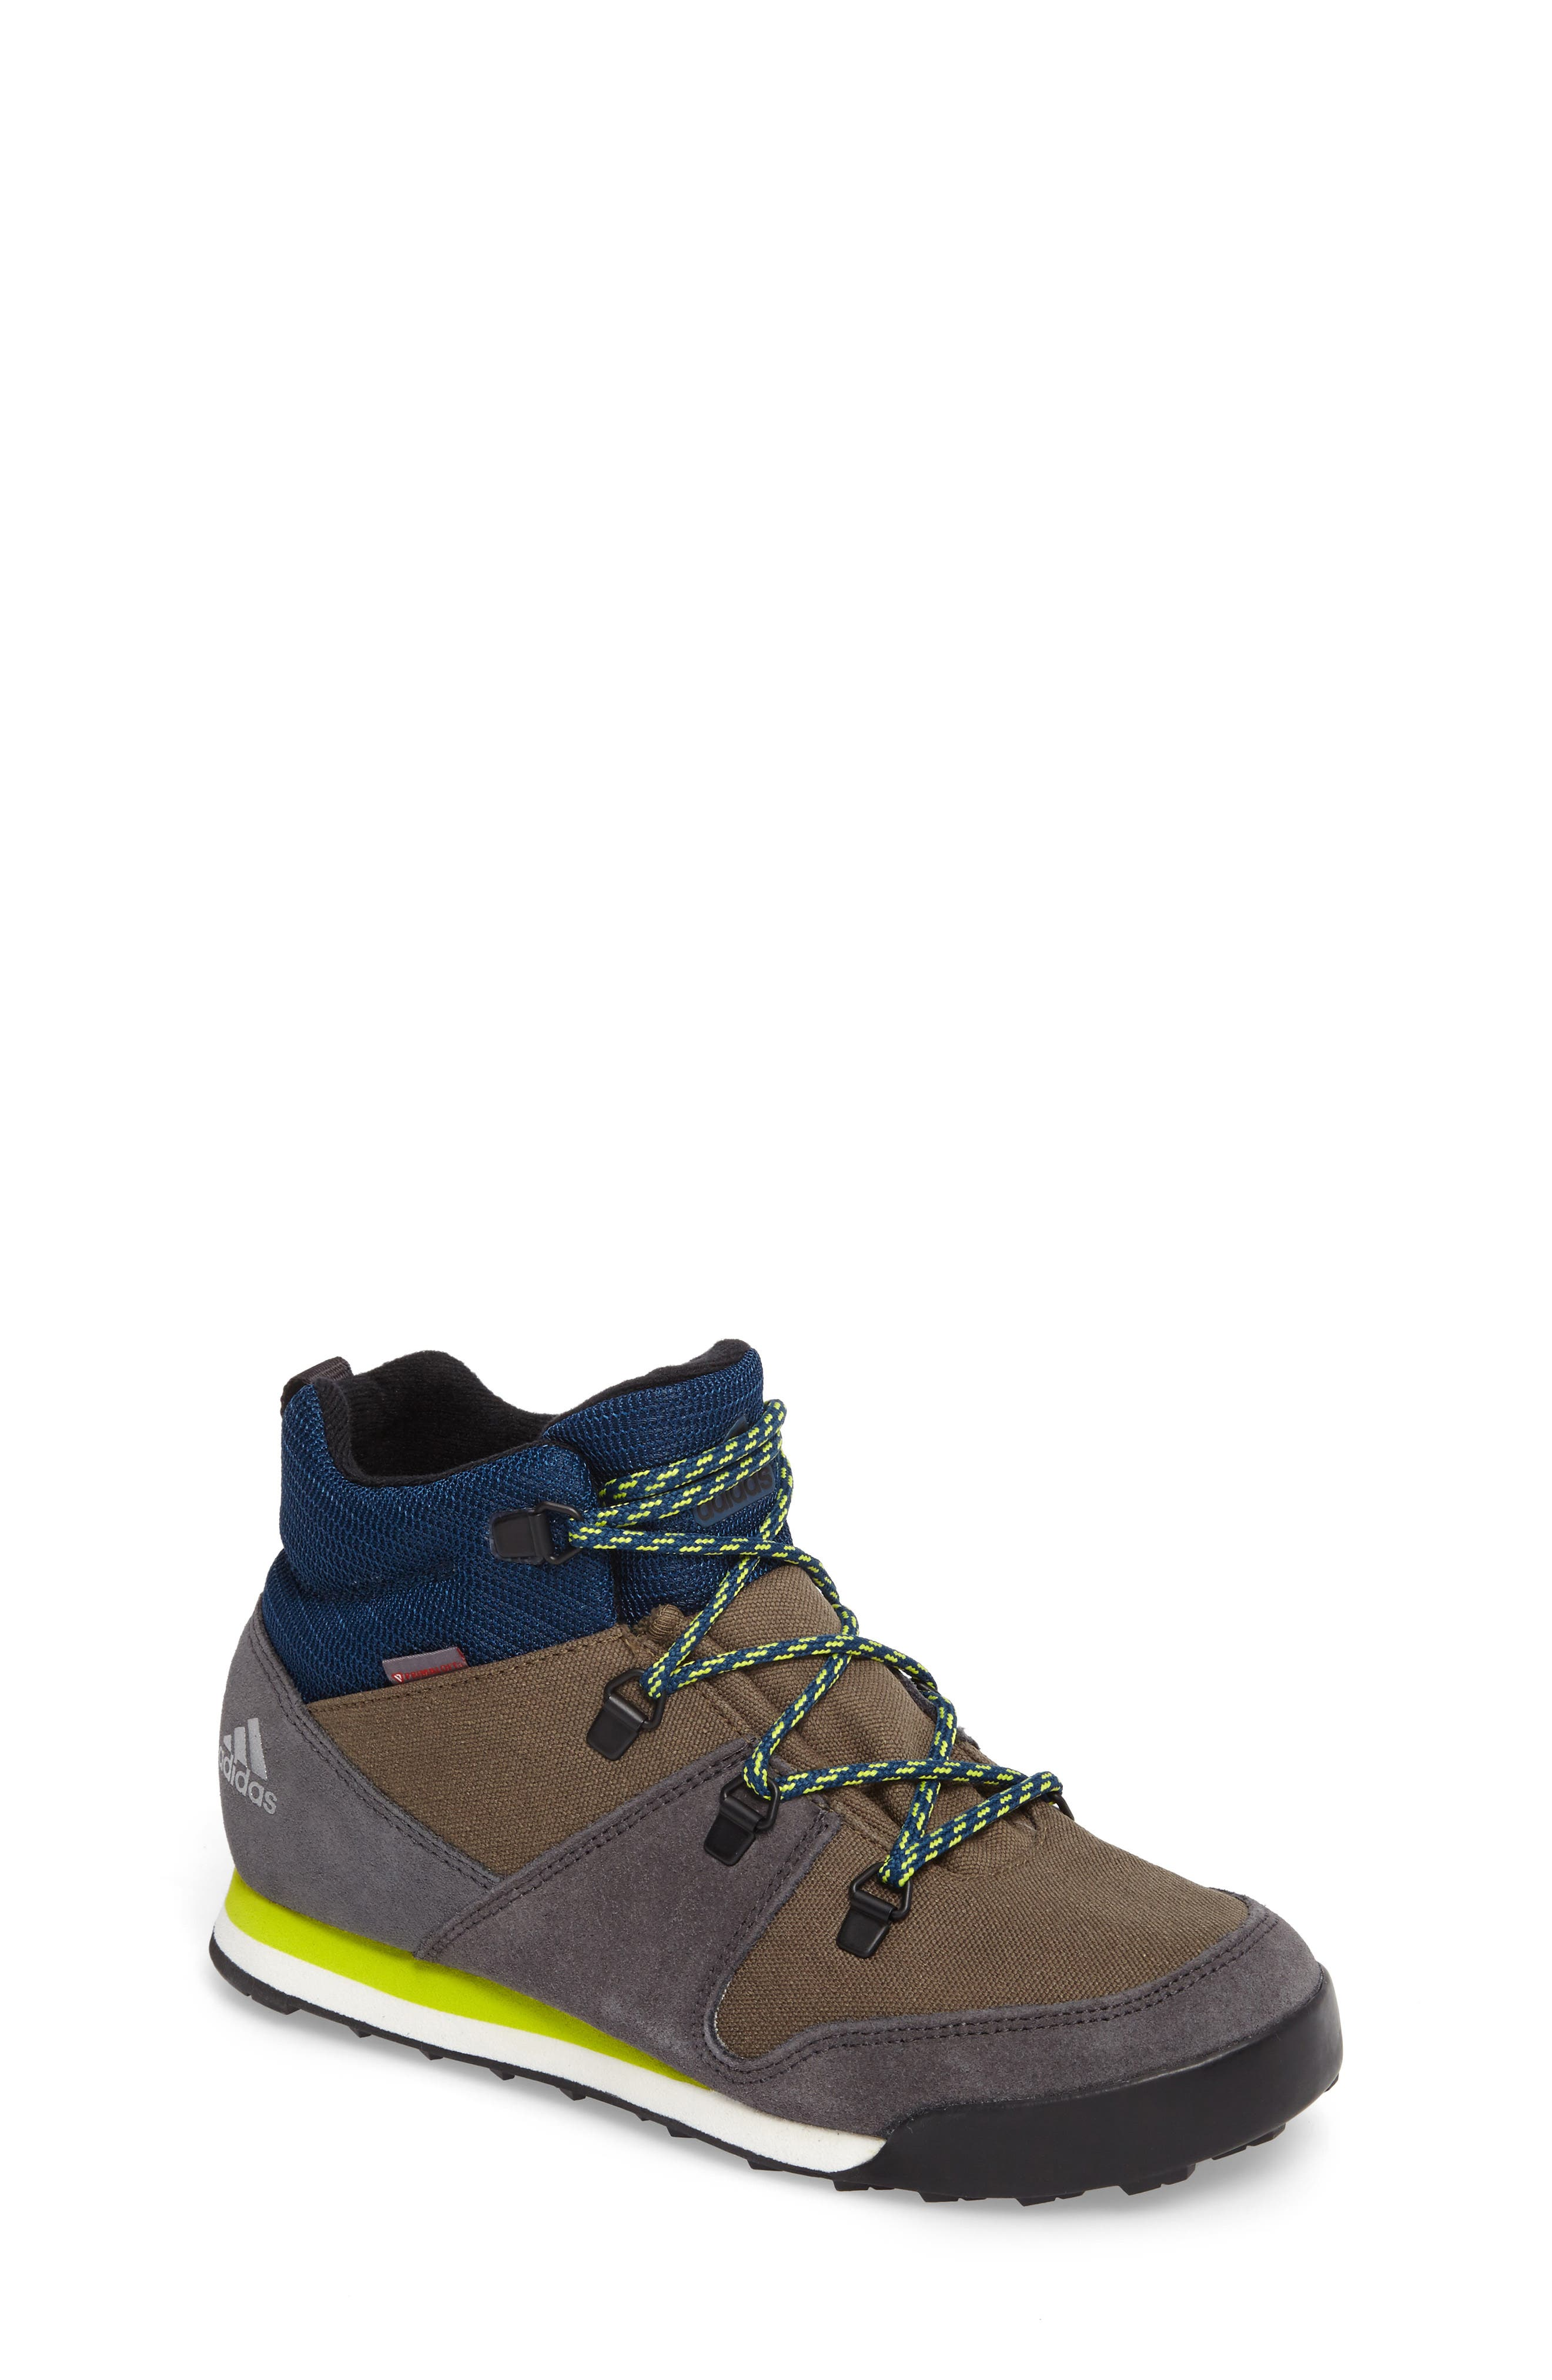 Snowpitch Insulated Sneaker Boot,                             Main thumbnail 1, color,                             Cargo/ Black/ Solar Yellow